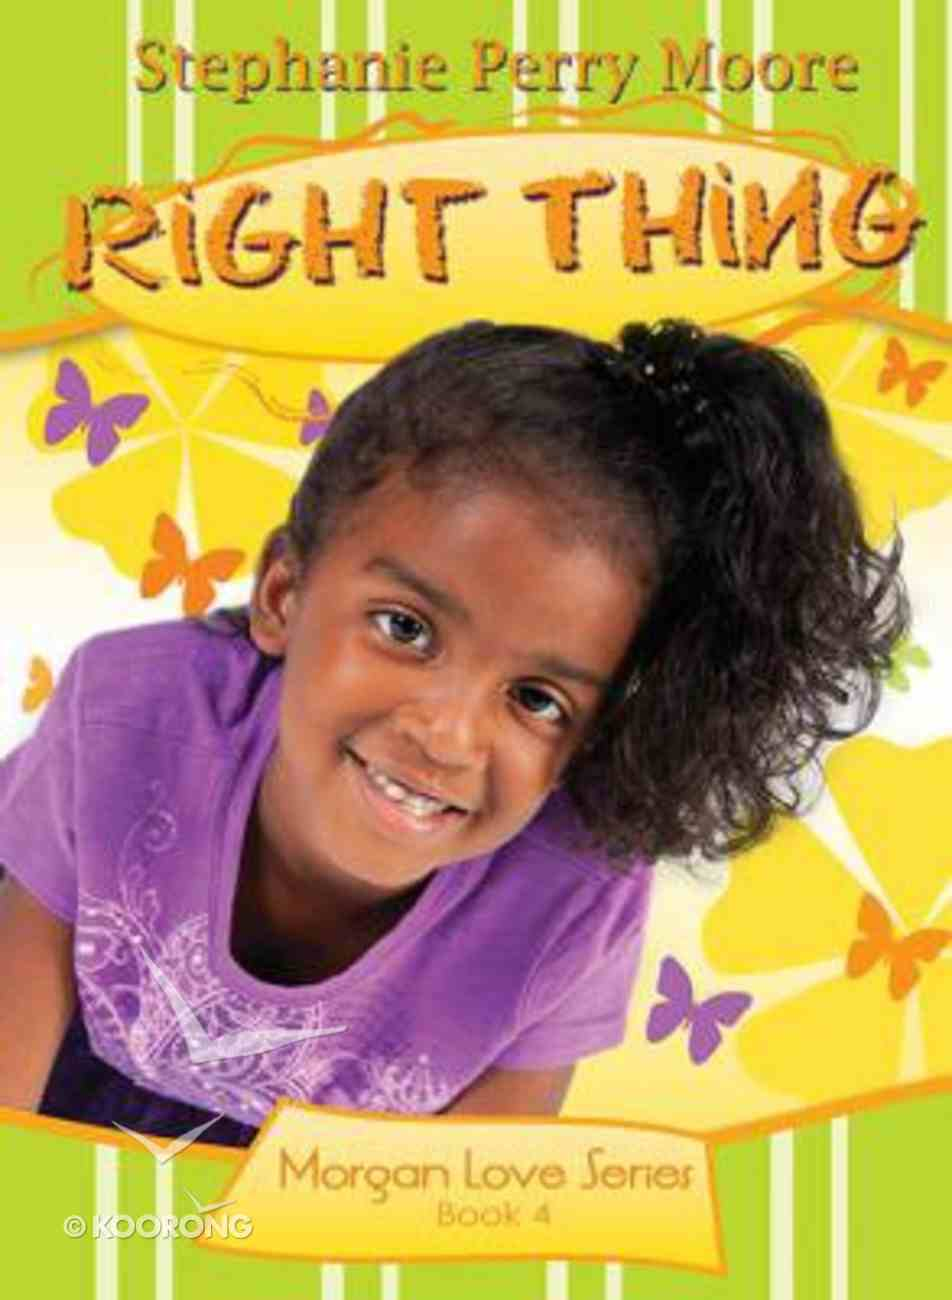 Right Thing (#04 in Morgan Love Series) Paperback